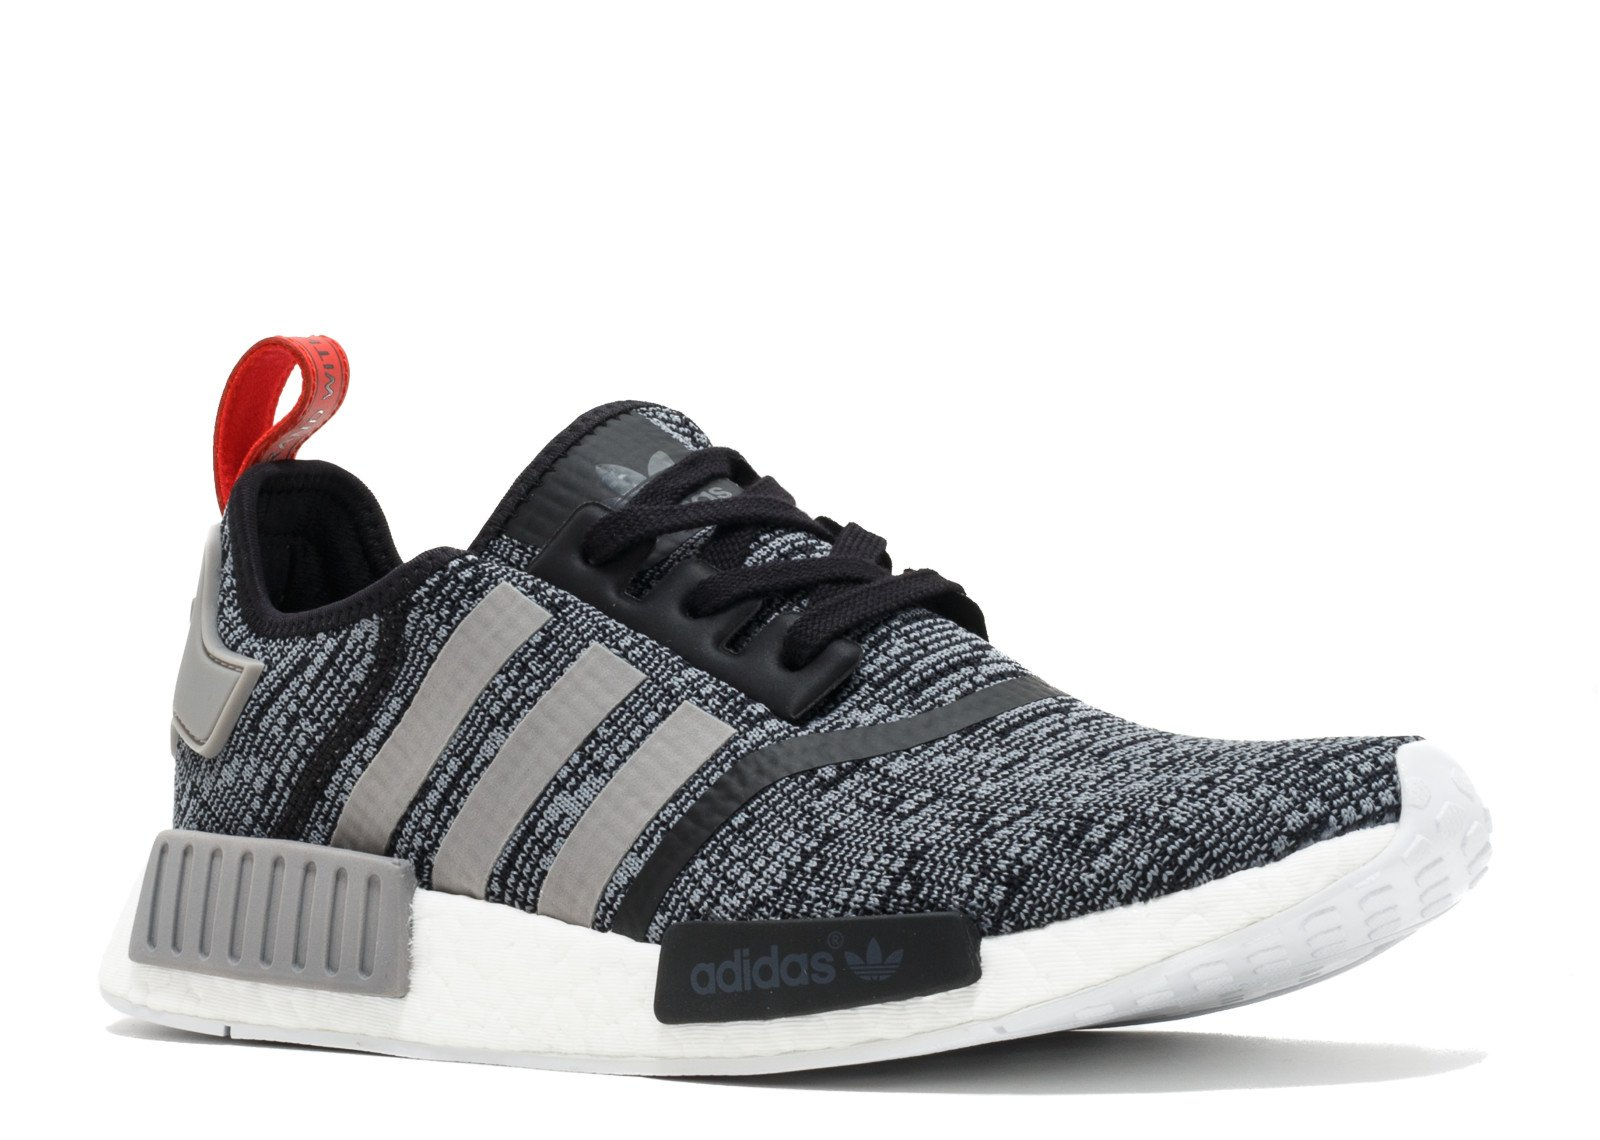 980228af86b6f Galleon - Adidas NMD R1 Men s Running Shoes Core Black Vibrant Red Running  White Bb2884 (9.5 D(M) US)